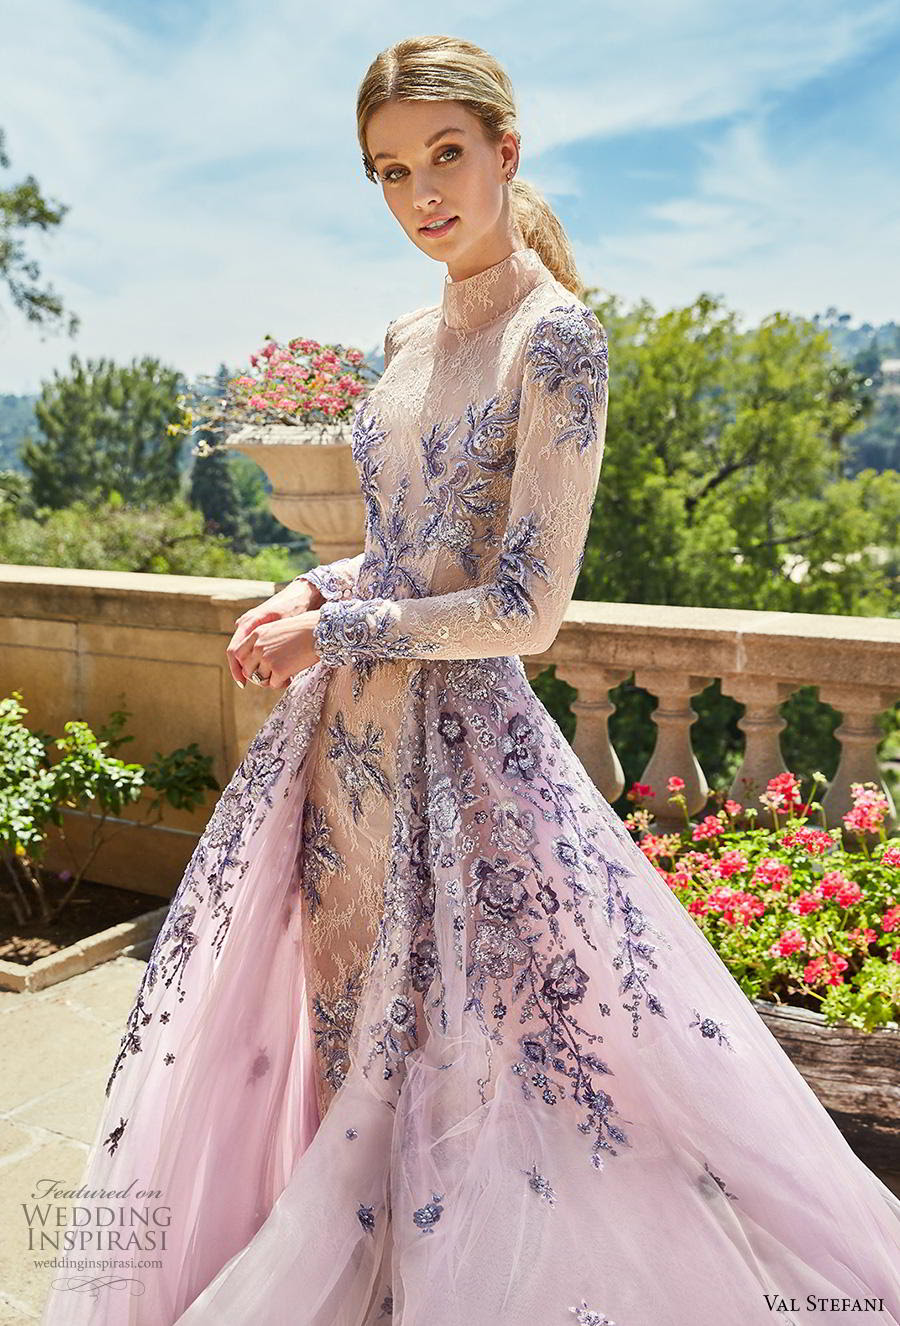 val stefani spring 2019 wedding dresses  wedding inspirasi